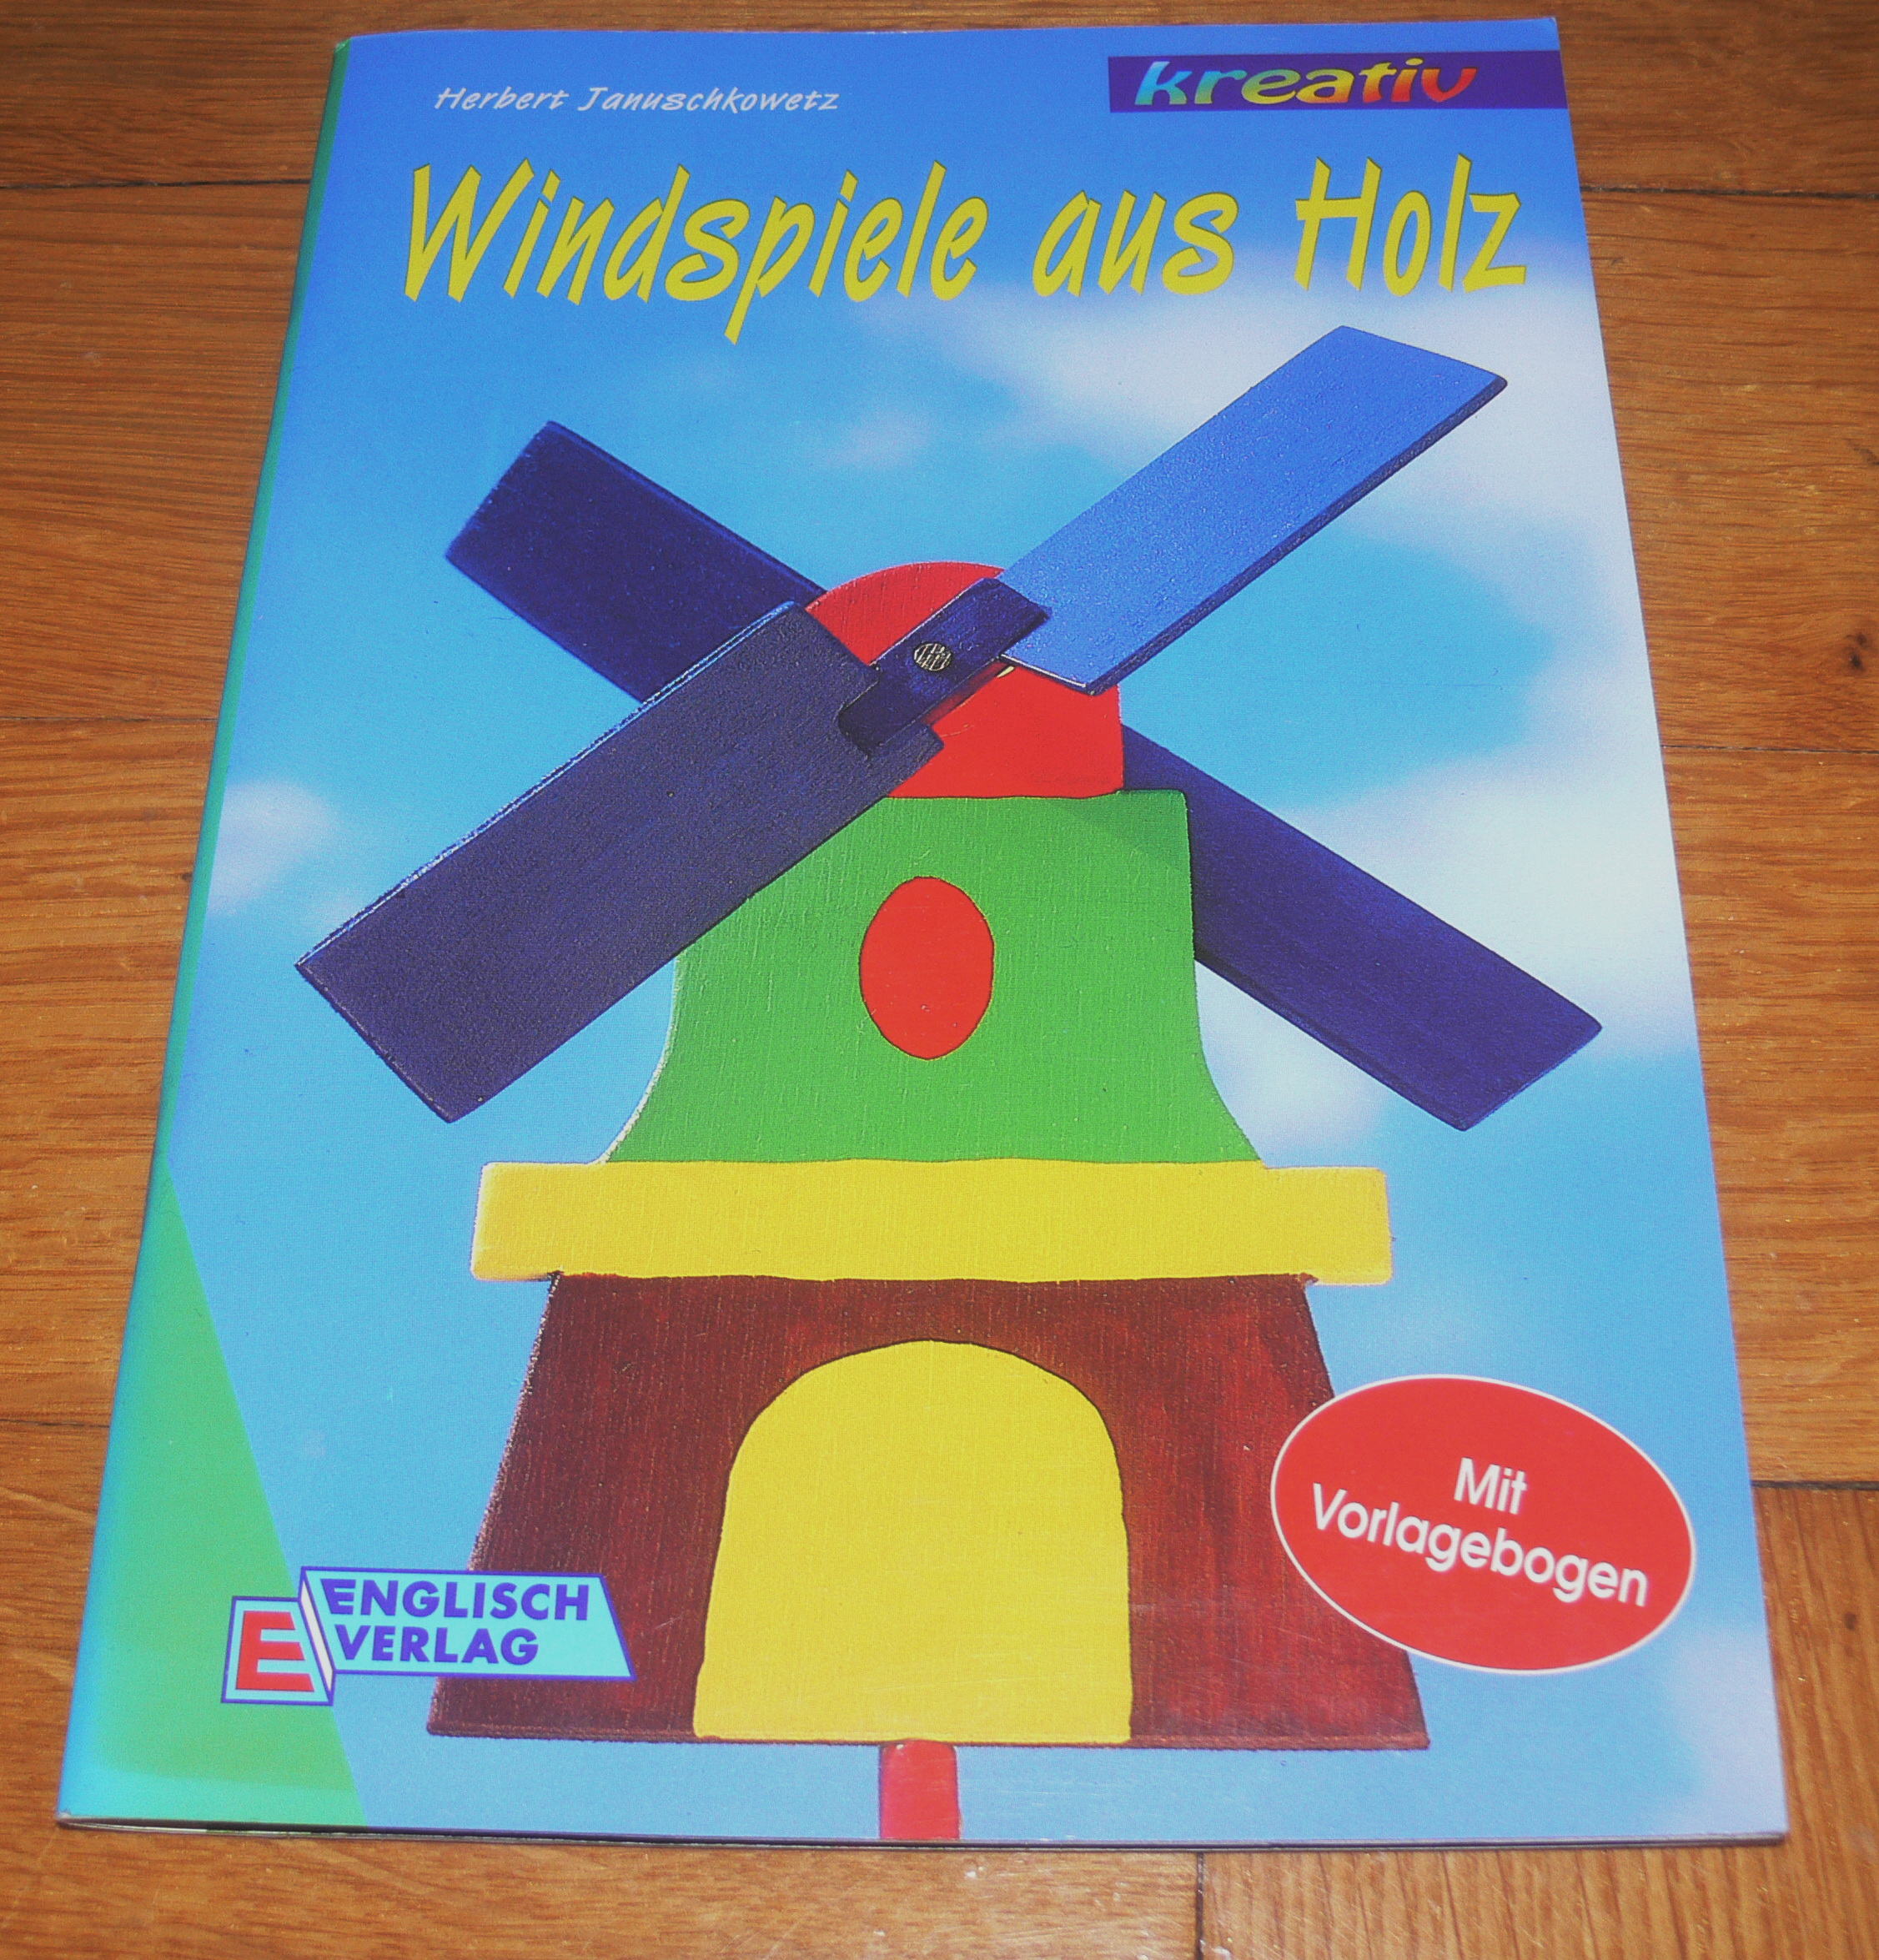 windspiele aus holz januschkowetz kreativ 1998. Black Bedroom Furniture Sets. Home Design Ideas